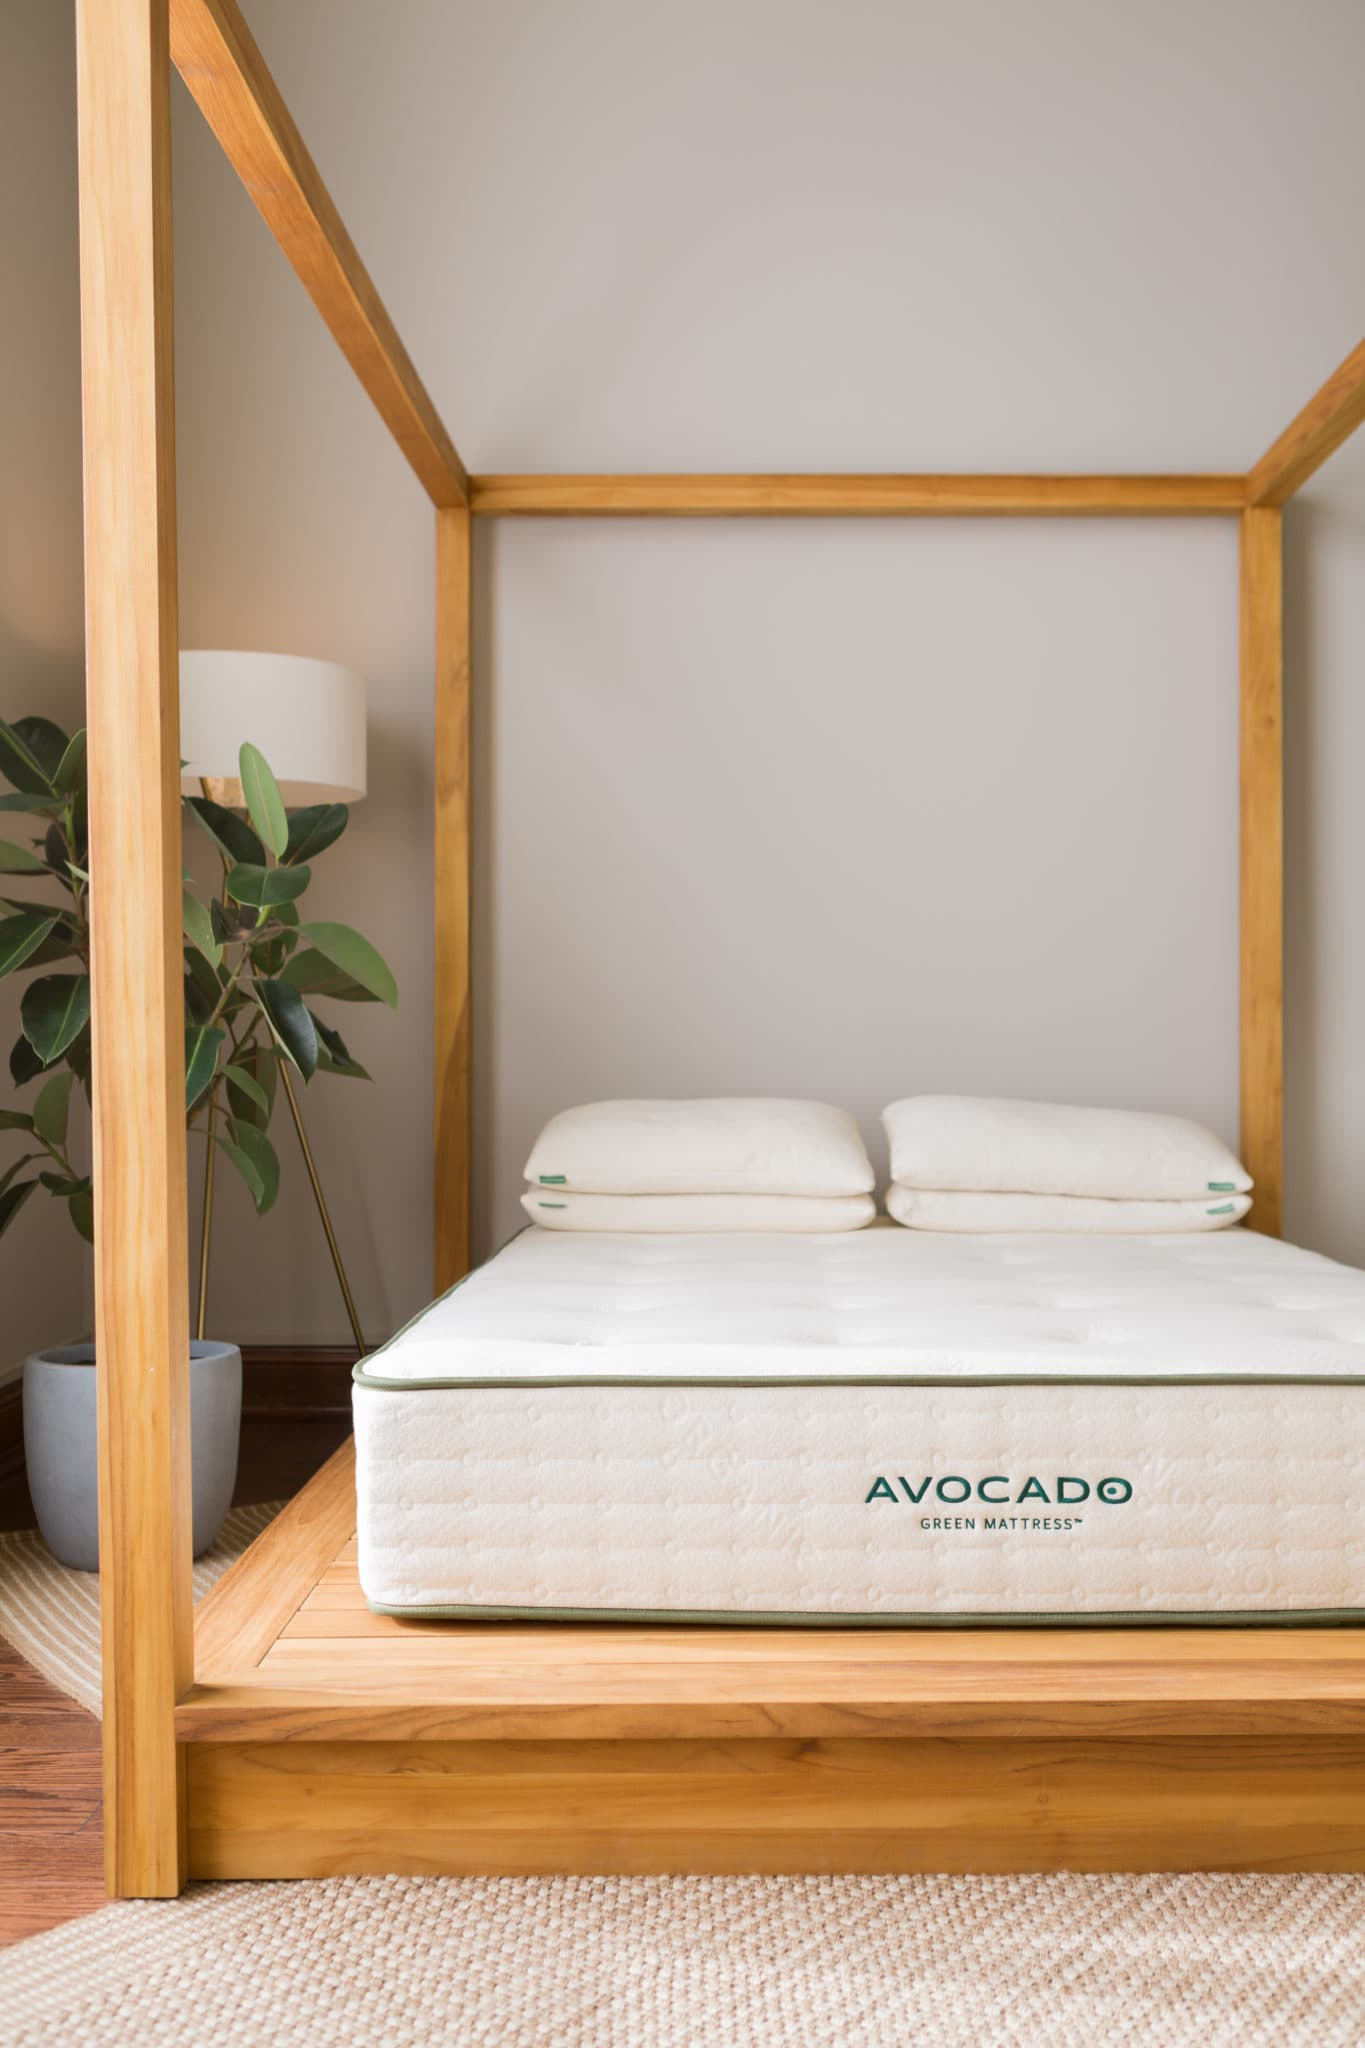 blank avocado mattress on wooden bed frame